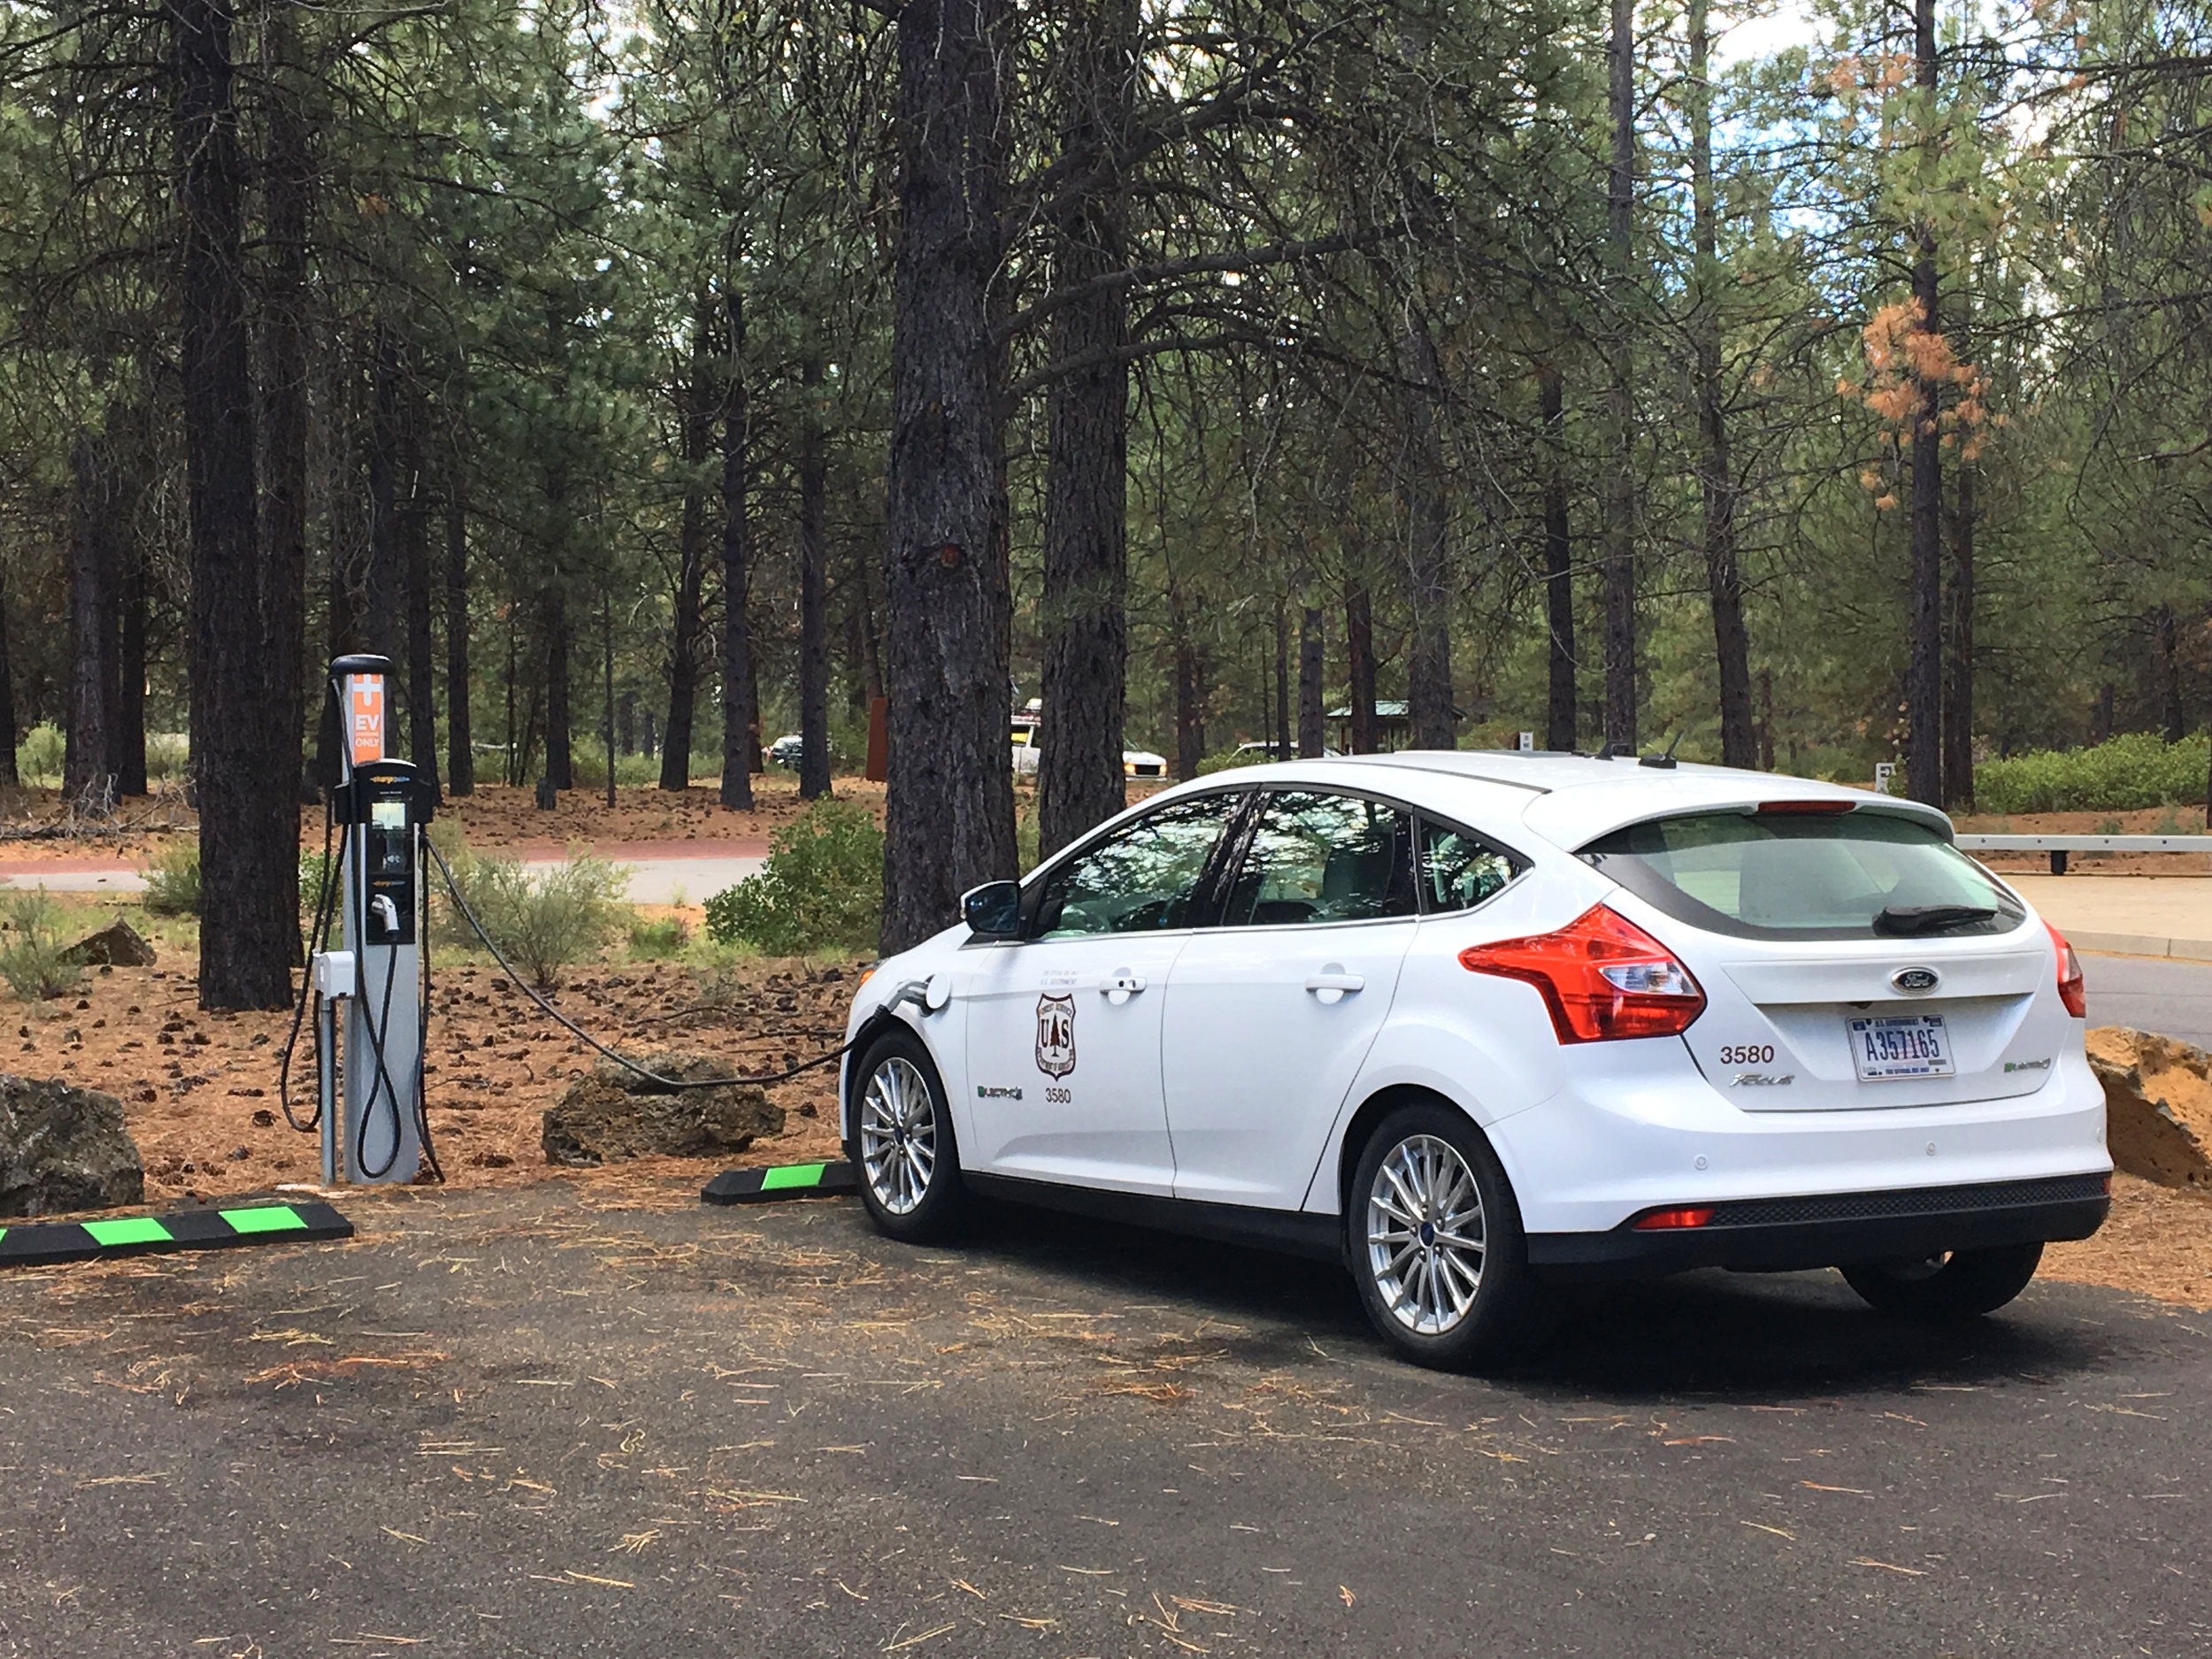 The U.S. Forest Service charges up their electric vehicle at Lava Lands Visitor Center, part of the  Newberry National Volcanic Monument .